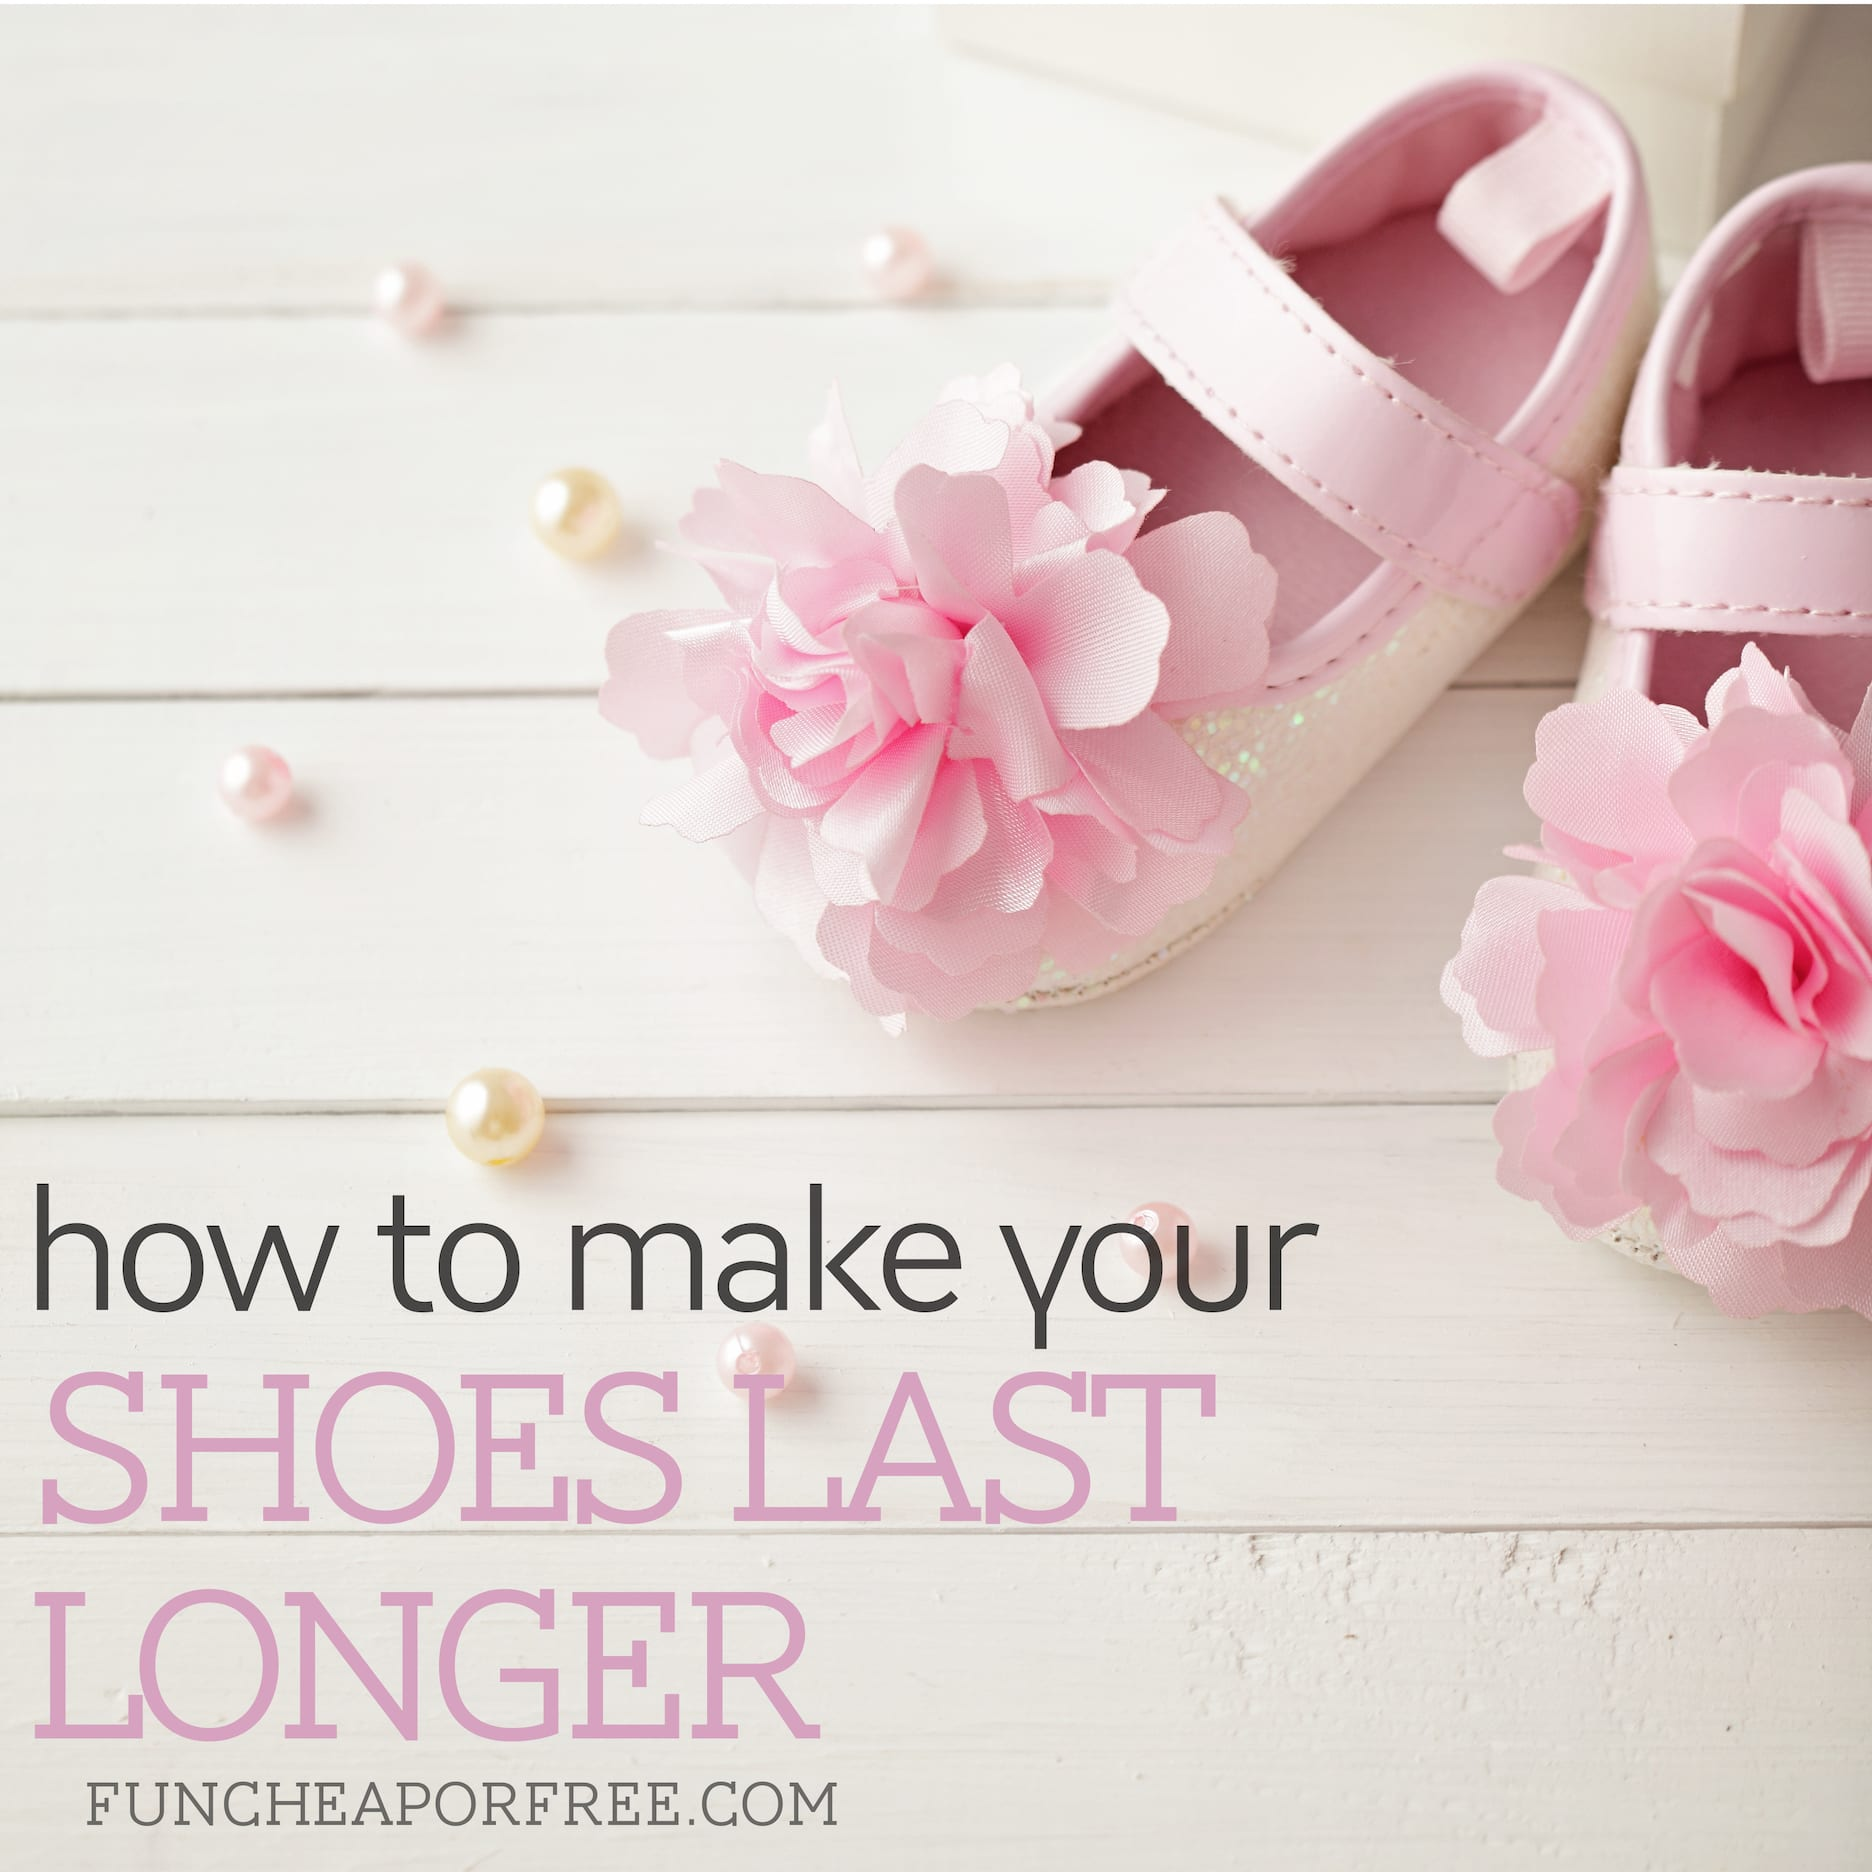 Simple ways to make your shoes last longer and keep them looking GREAT! From FunCheapOrFree.com